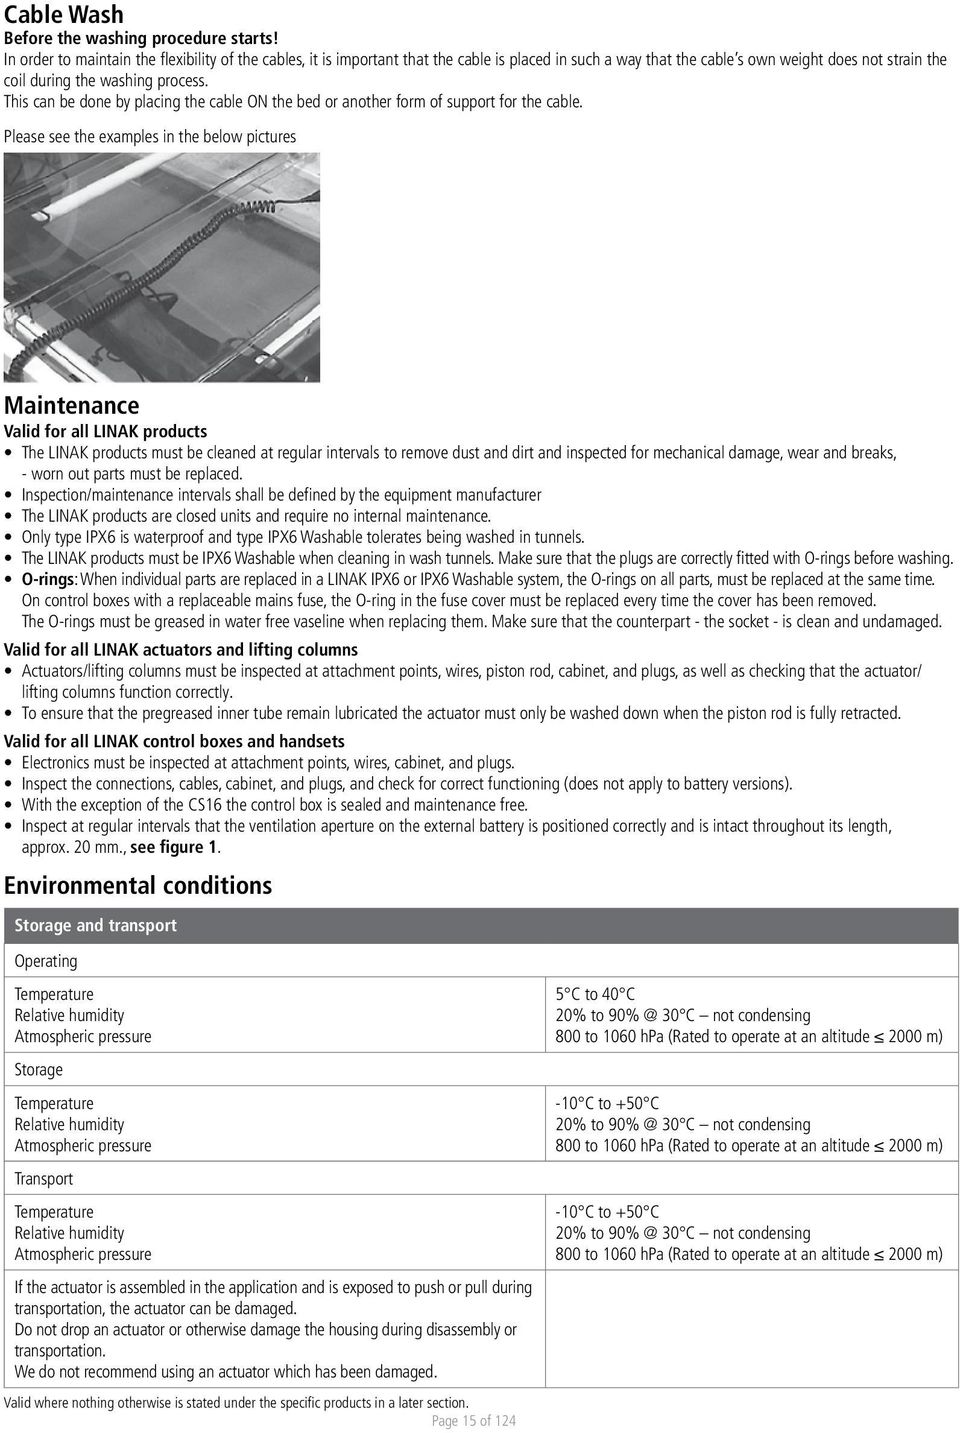 Linear Actuators And Electronics Pdf Linak Actuator Wiring Diagram This Can Be Done By Placing The Cable On Bed Or Another Form Of Support